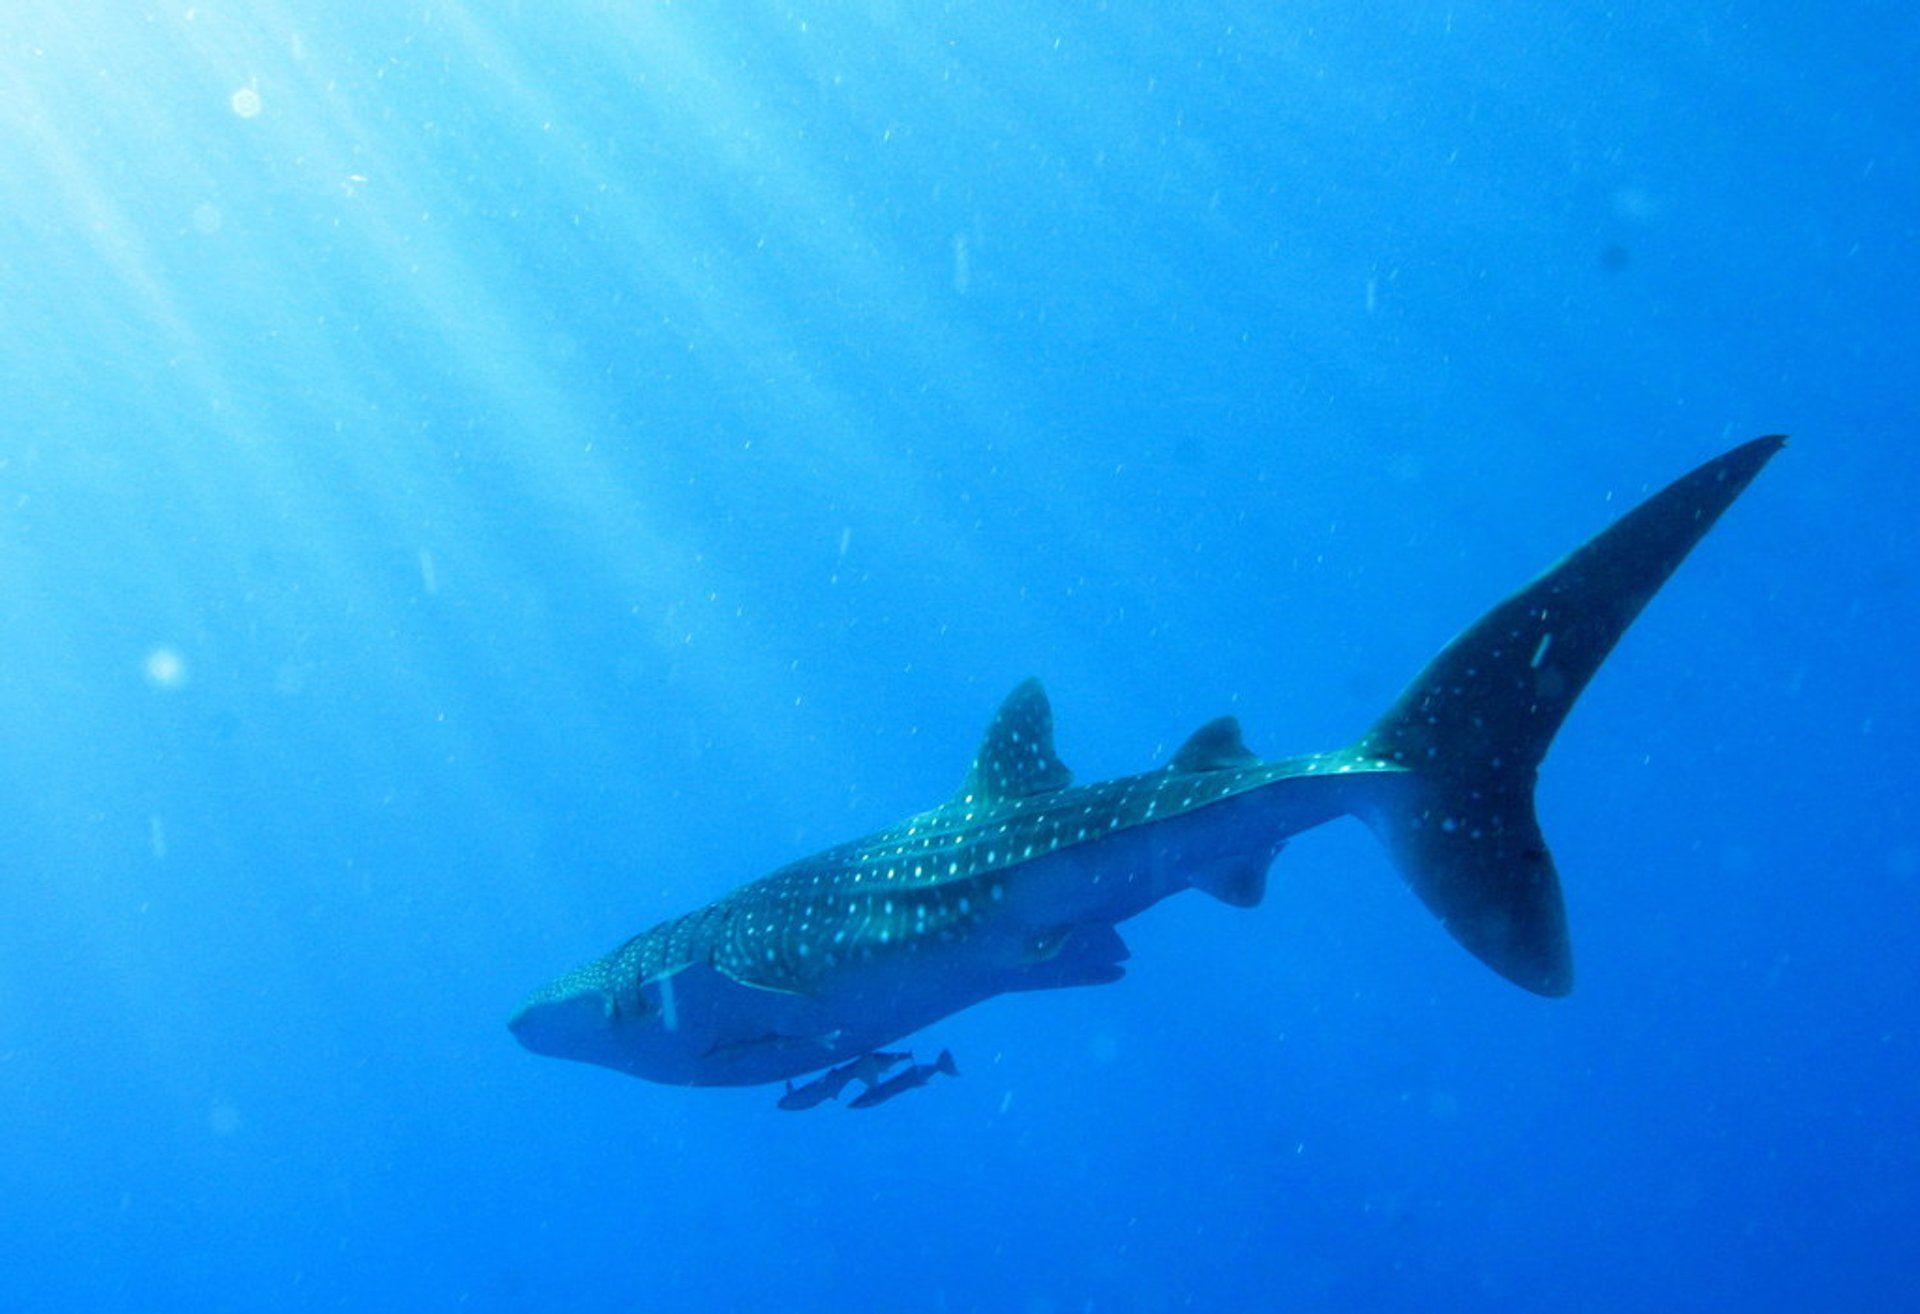 Whaleshark near Daedalus Reef, Red Sea 2020